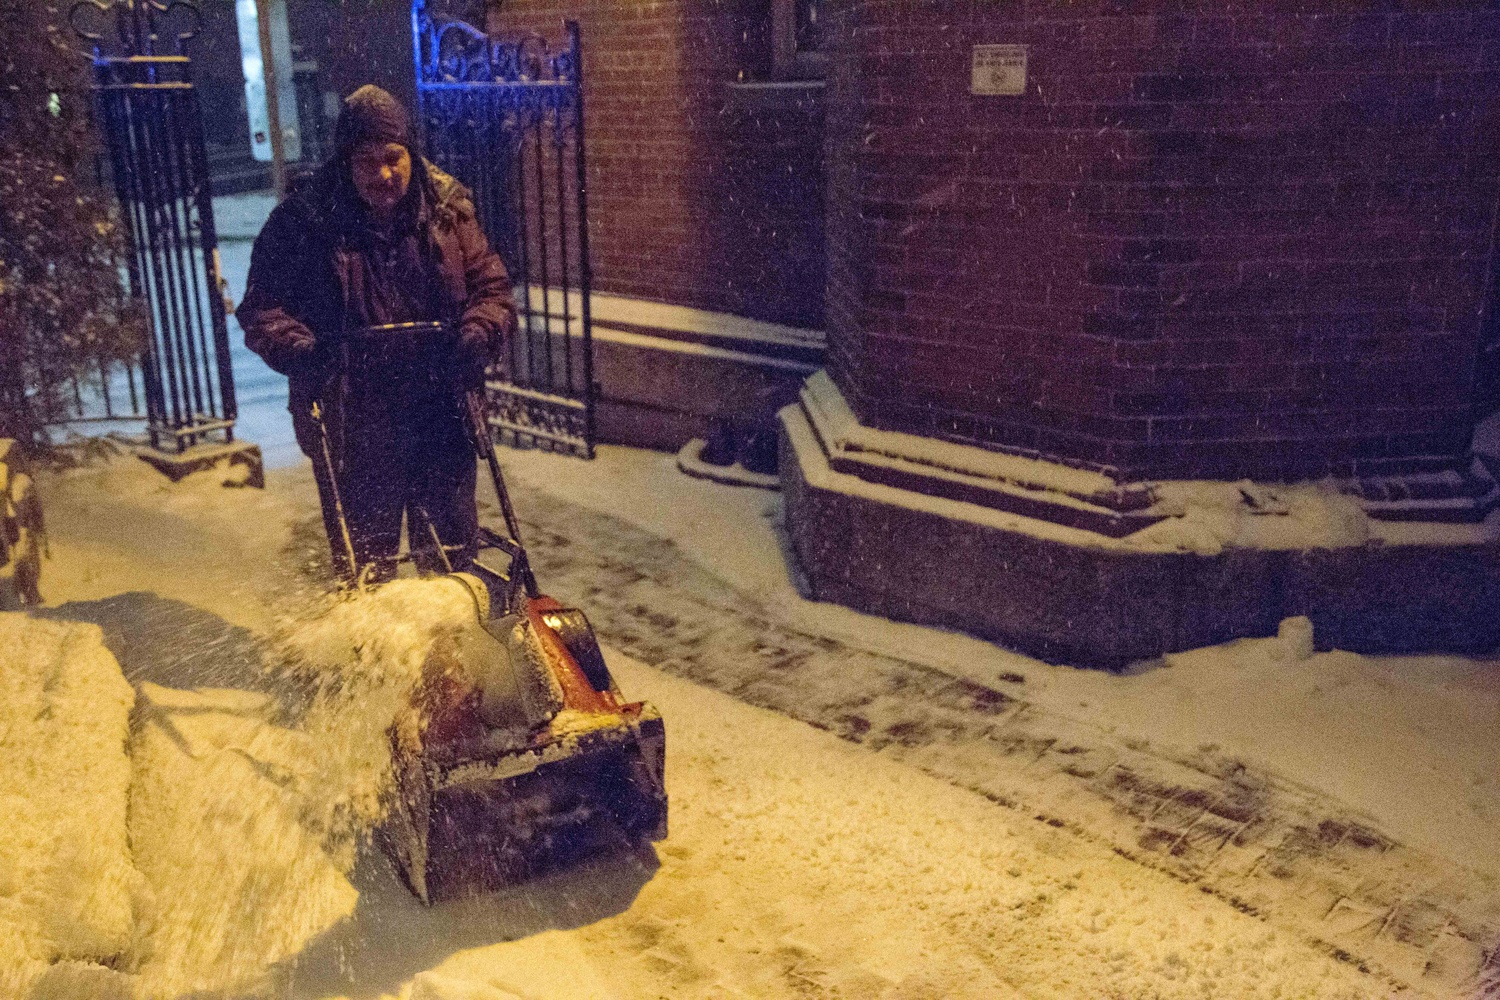 Harvard Campus Services custodian Ramon Casas plows snow outside Adams House on Monday evening. He will spend Monday night on campus with other staff members as a blizzard descends on the Boston area.